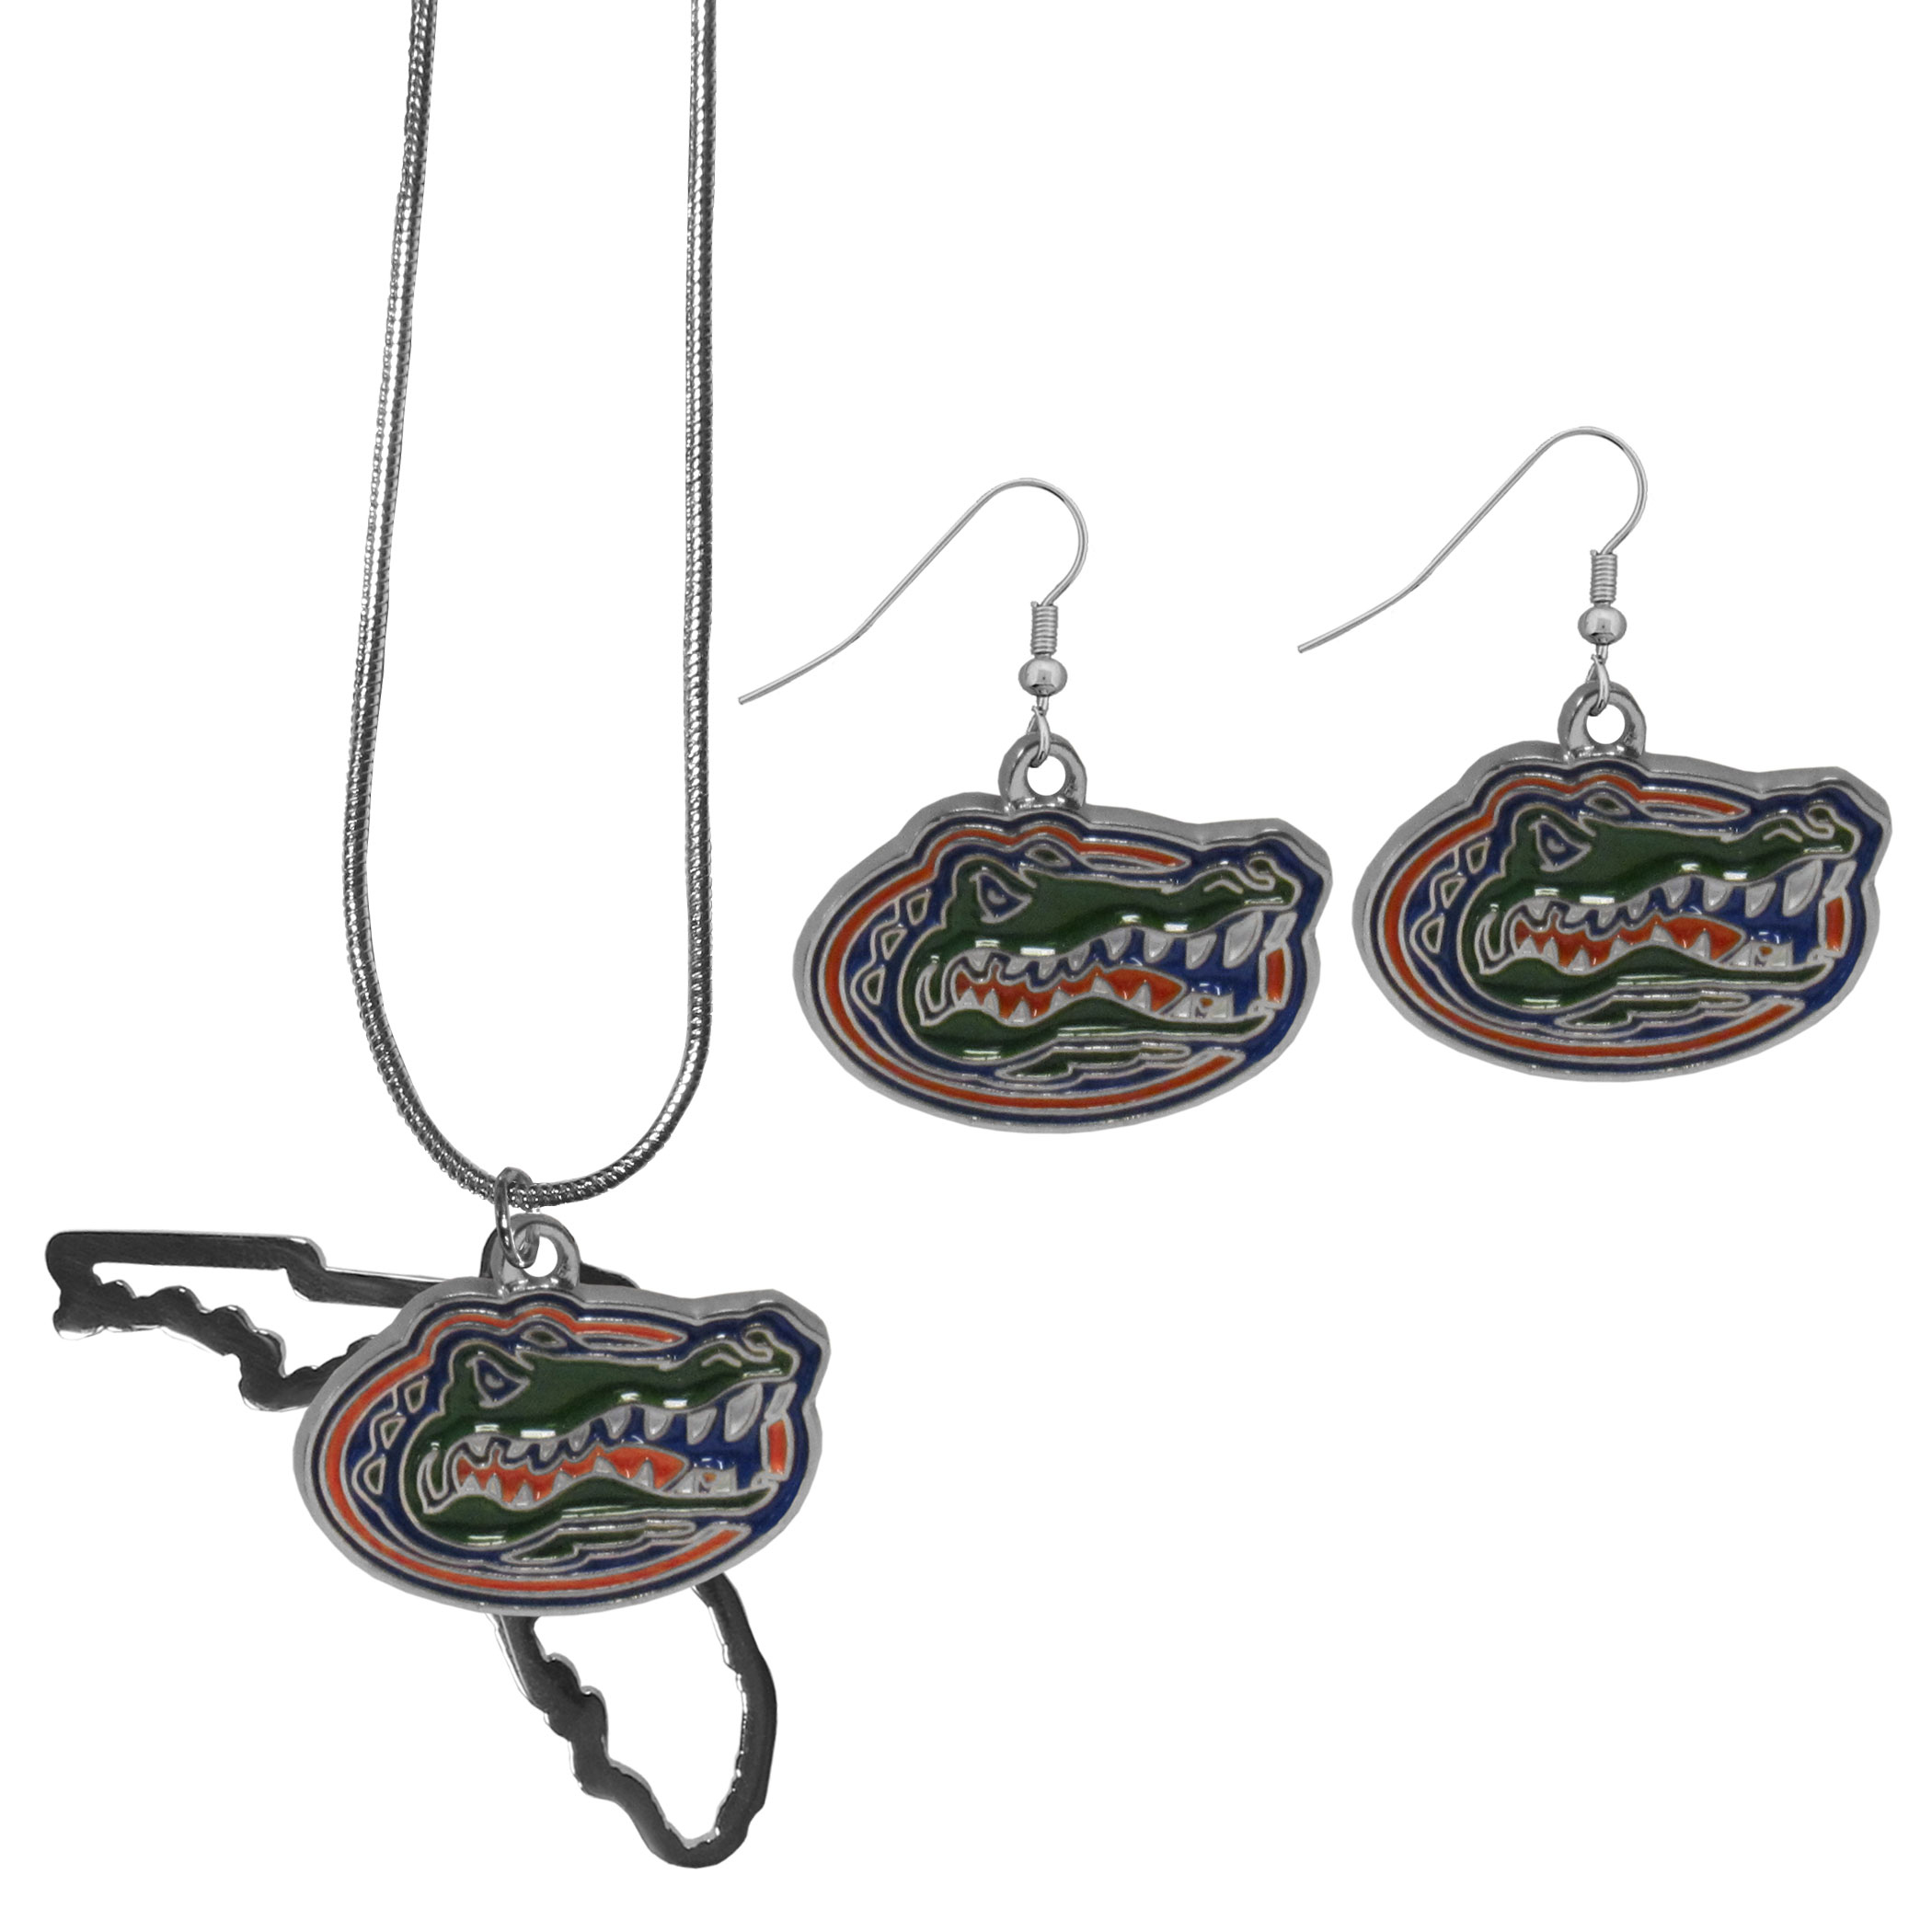 Florida Gators Dangle Earrings and State Necklace Set - Get in on the trend! State themes are a trend that just keeps getting more popular and this jewelry set takes the state style and give it a sporty twist with a Florida Gators necklace that features an Arizona state outline charm paired with a beautiful team charm and matching team charm dangle earrings. The earrings feature hypoallergenic fishhook posts that are nickel free.